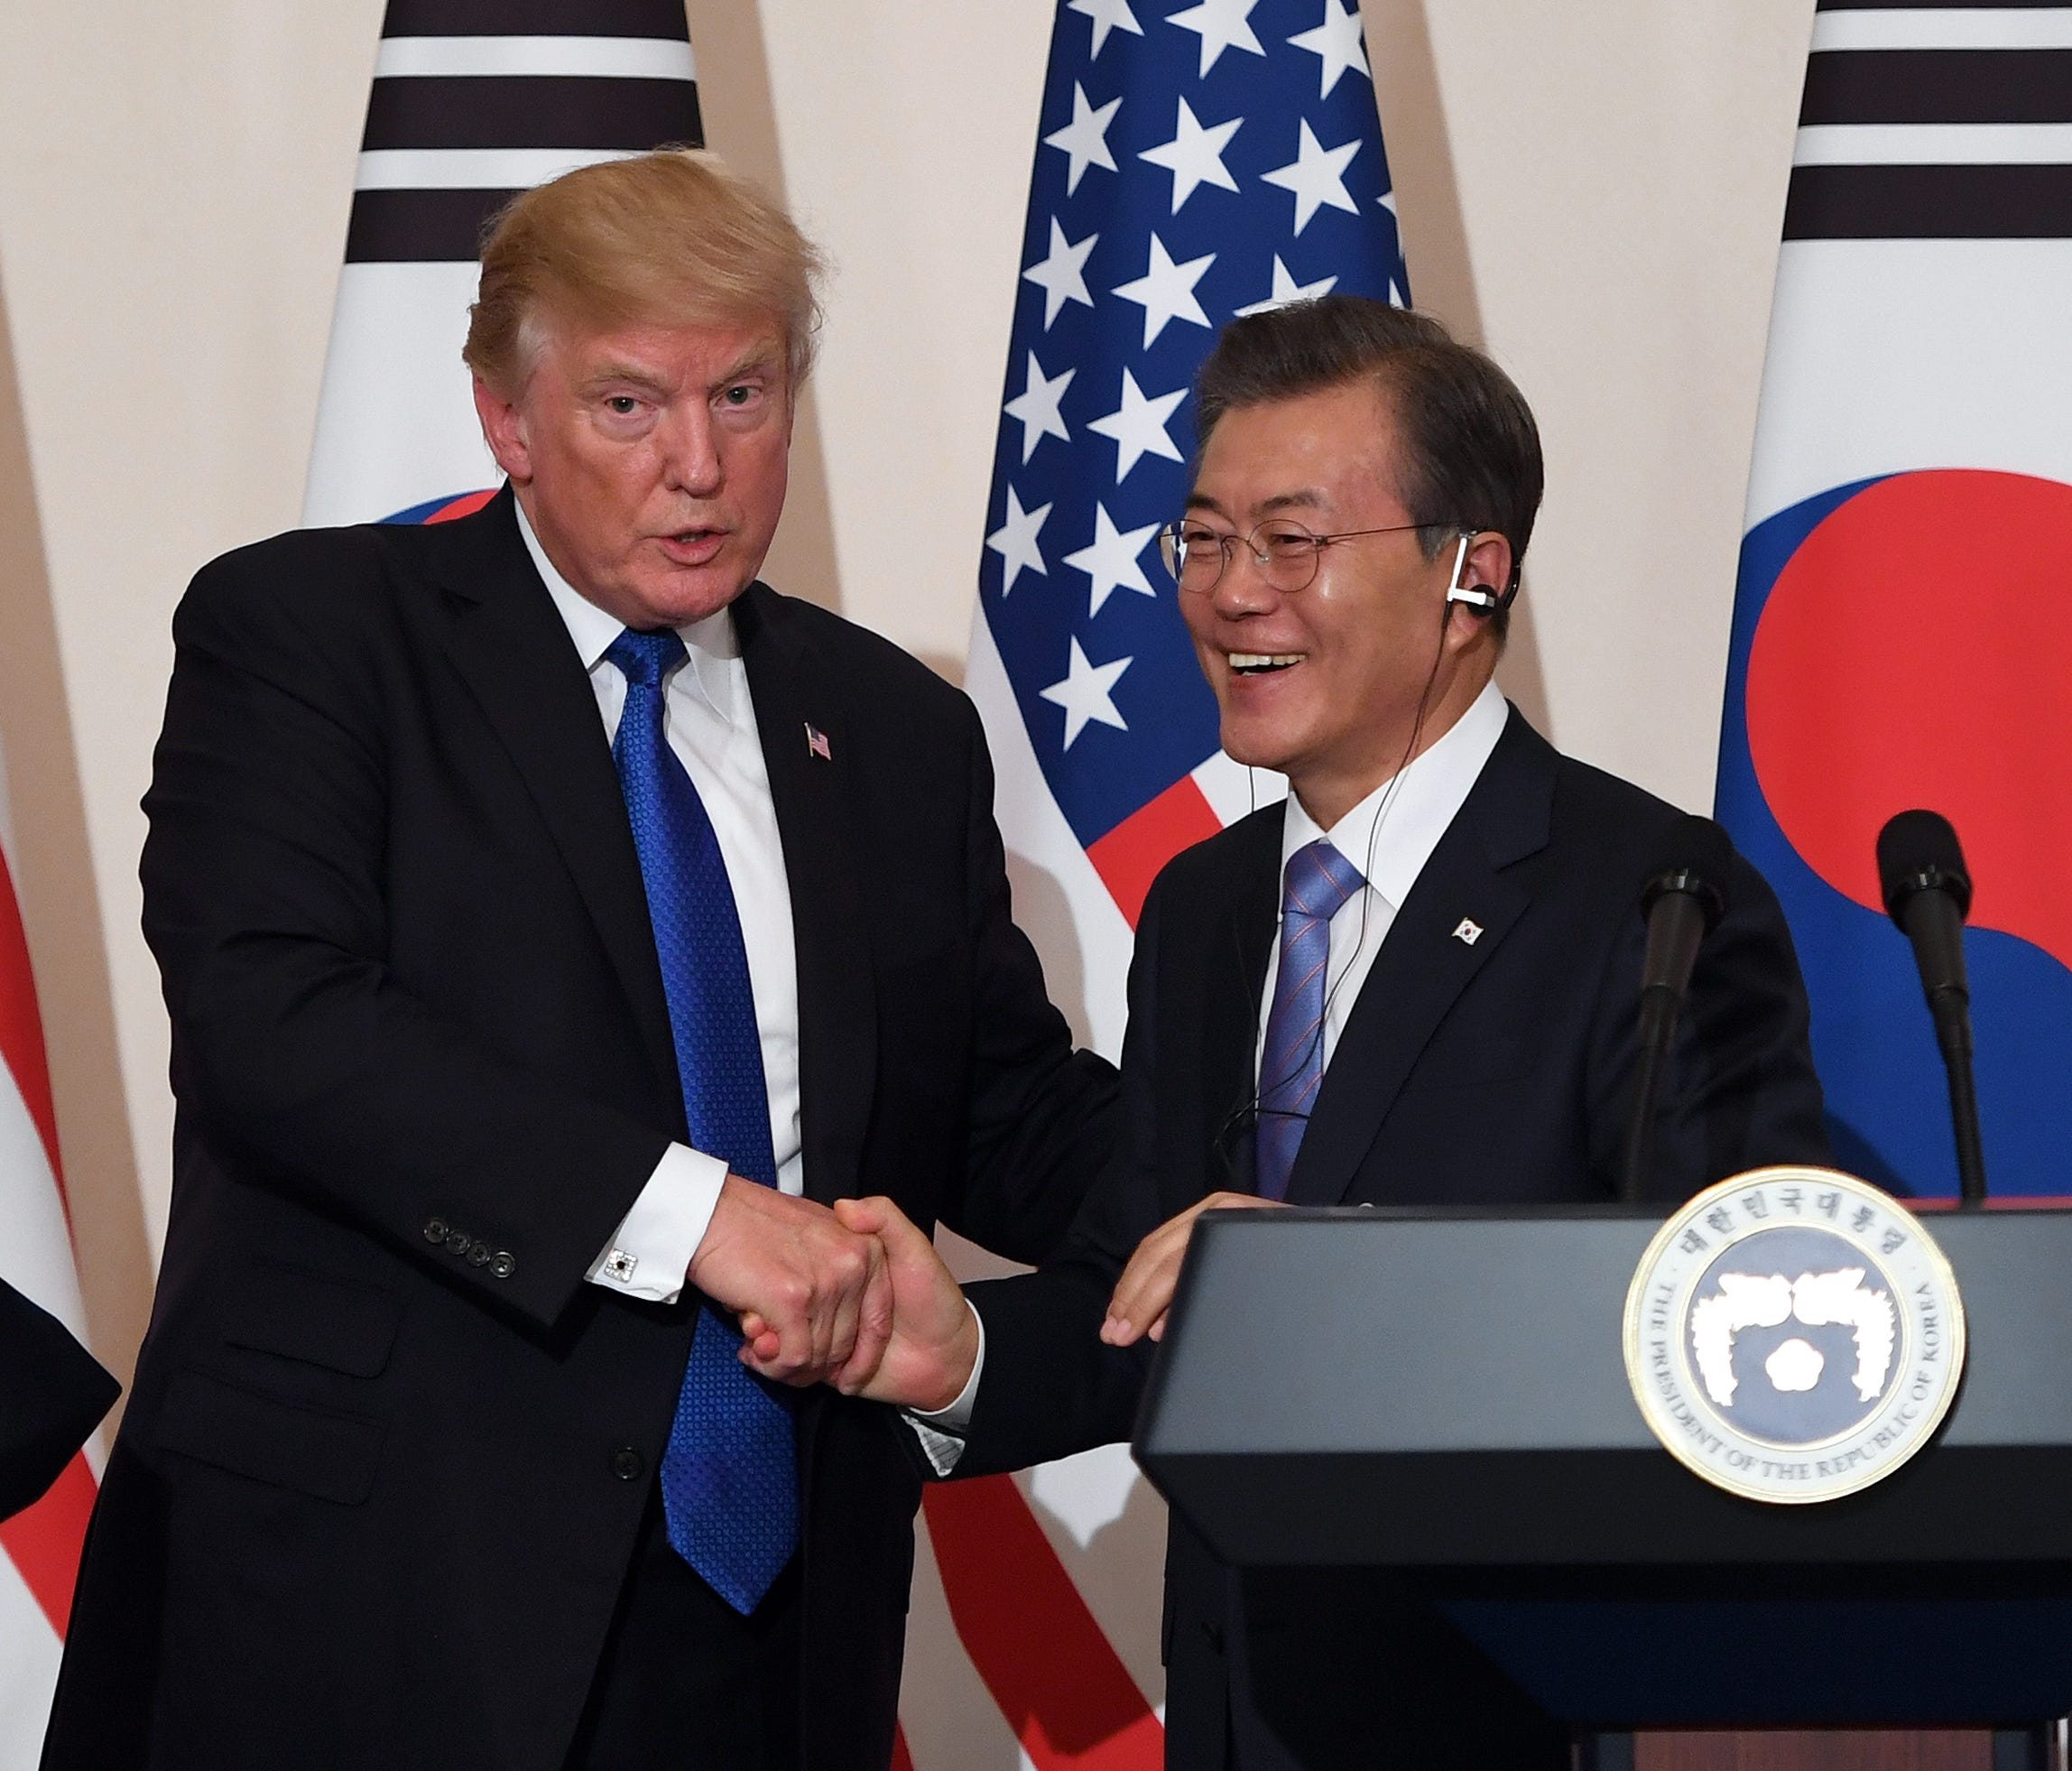 President Trump (L) shakes hands with South Korean President Moon Jae-In (R) during a joint press conference at the presidential Blue House in Seoul on Nov. 7, 2017.